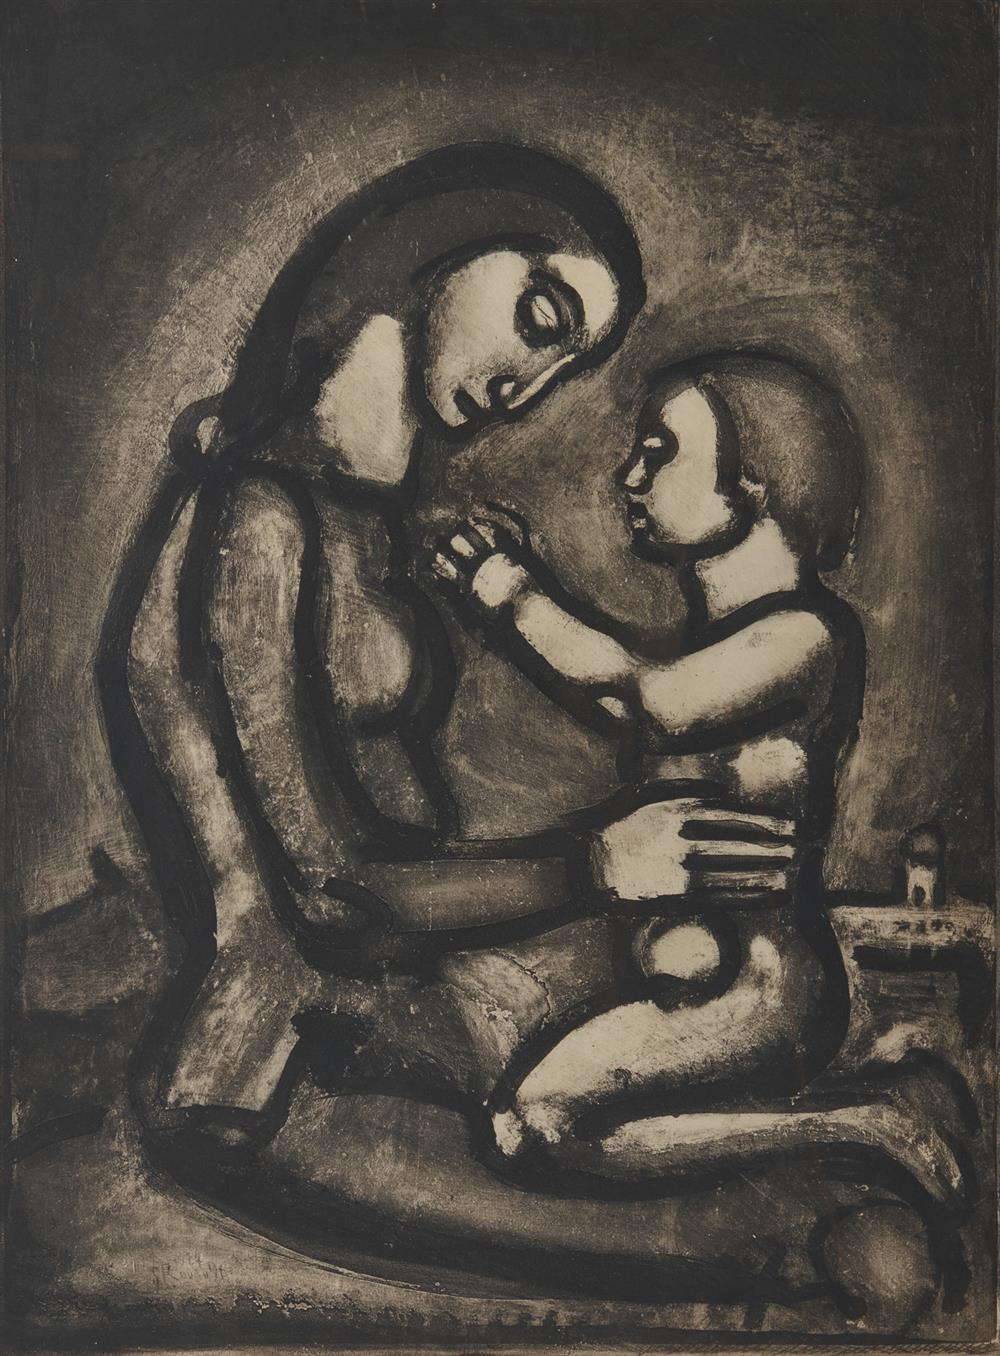 GEORGES ROUAULT, (French, 1871-1958), Il serait si doux d'aimer!, aquatint, plate: 22 7/8 x 17 3/8 in., frame: 34 1/2 x 28 1/2 in.